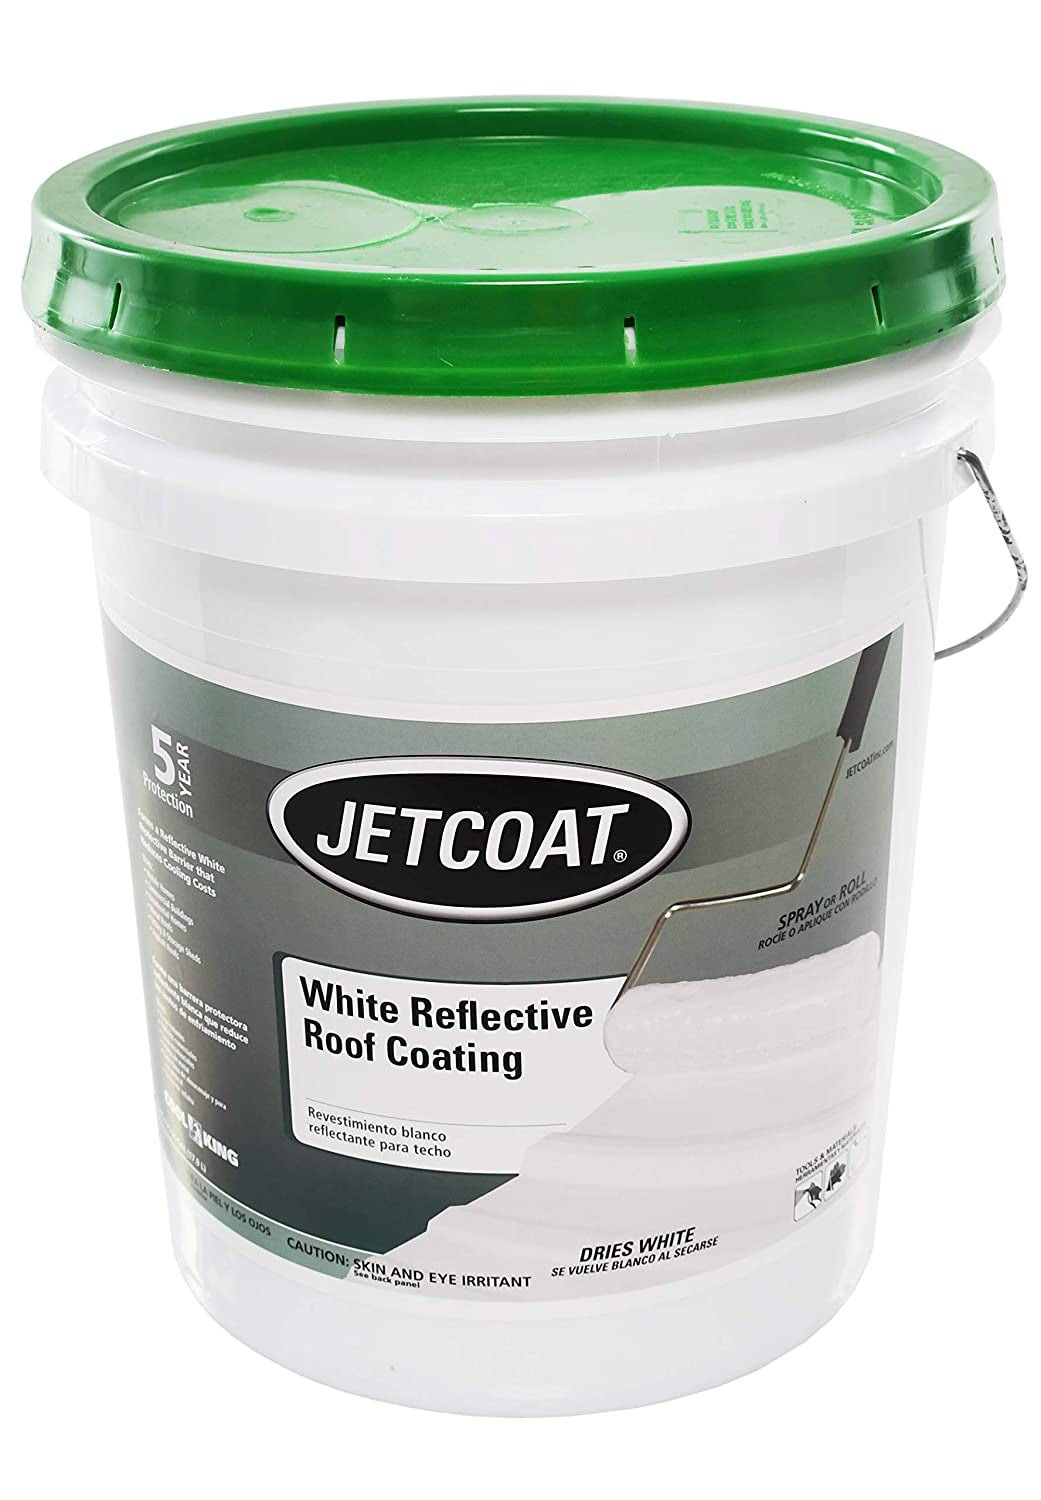 Amazon.com: Jetcoat Cool King Elastomeric Acrylic Reflective Roof Coating, White, 5 Gallon, 7 Year Protection: Automotive